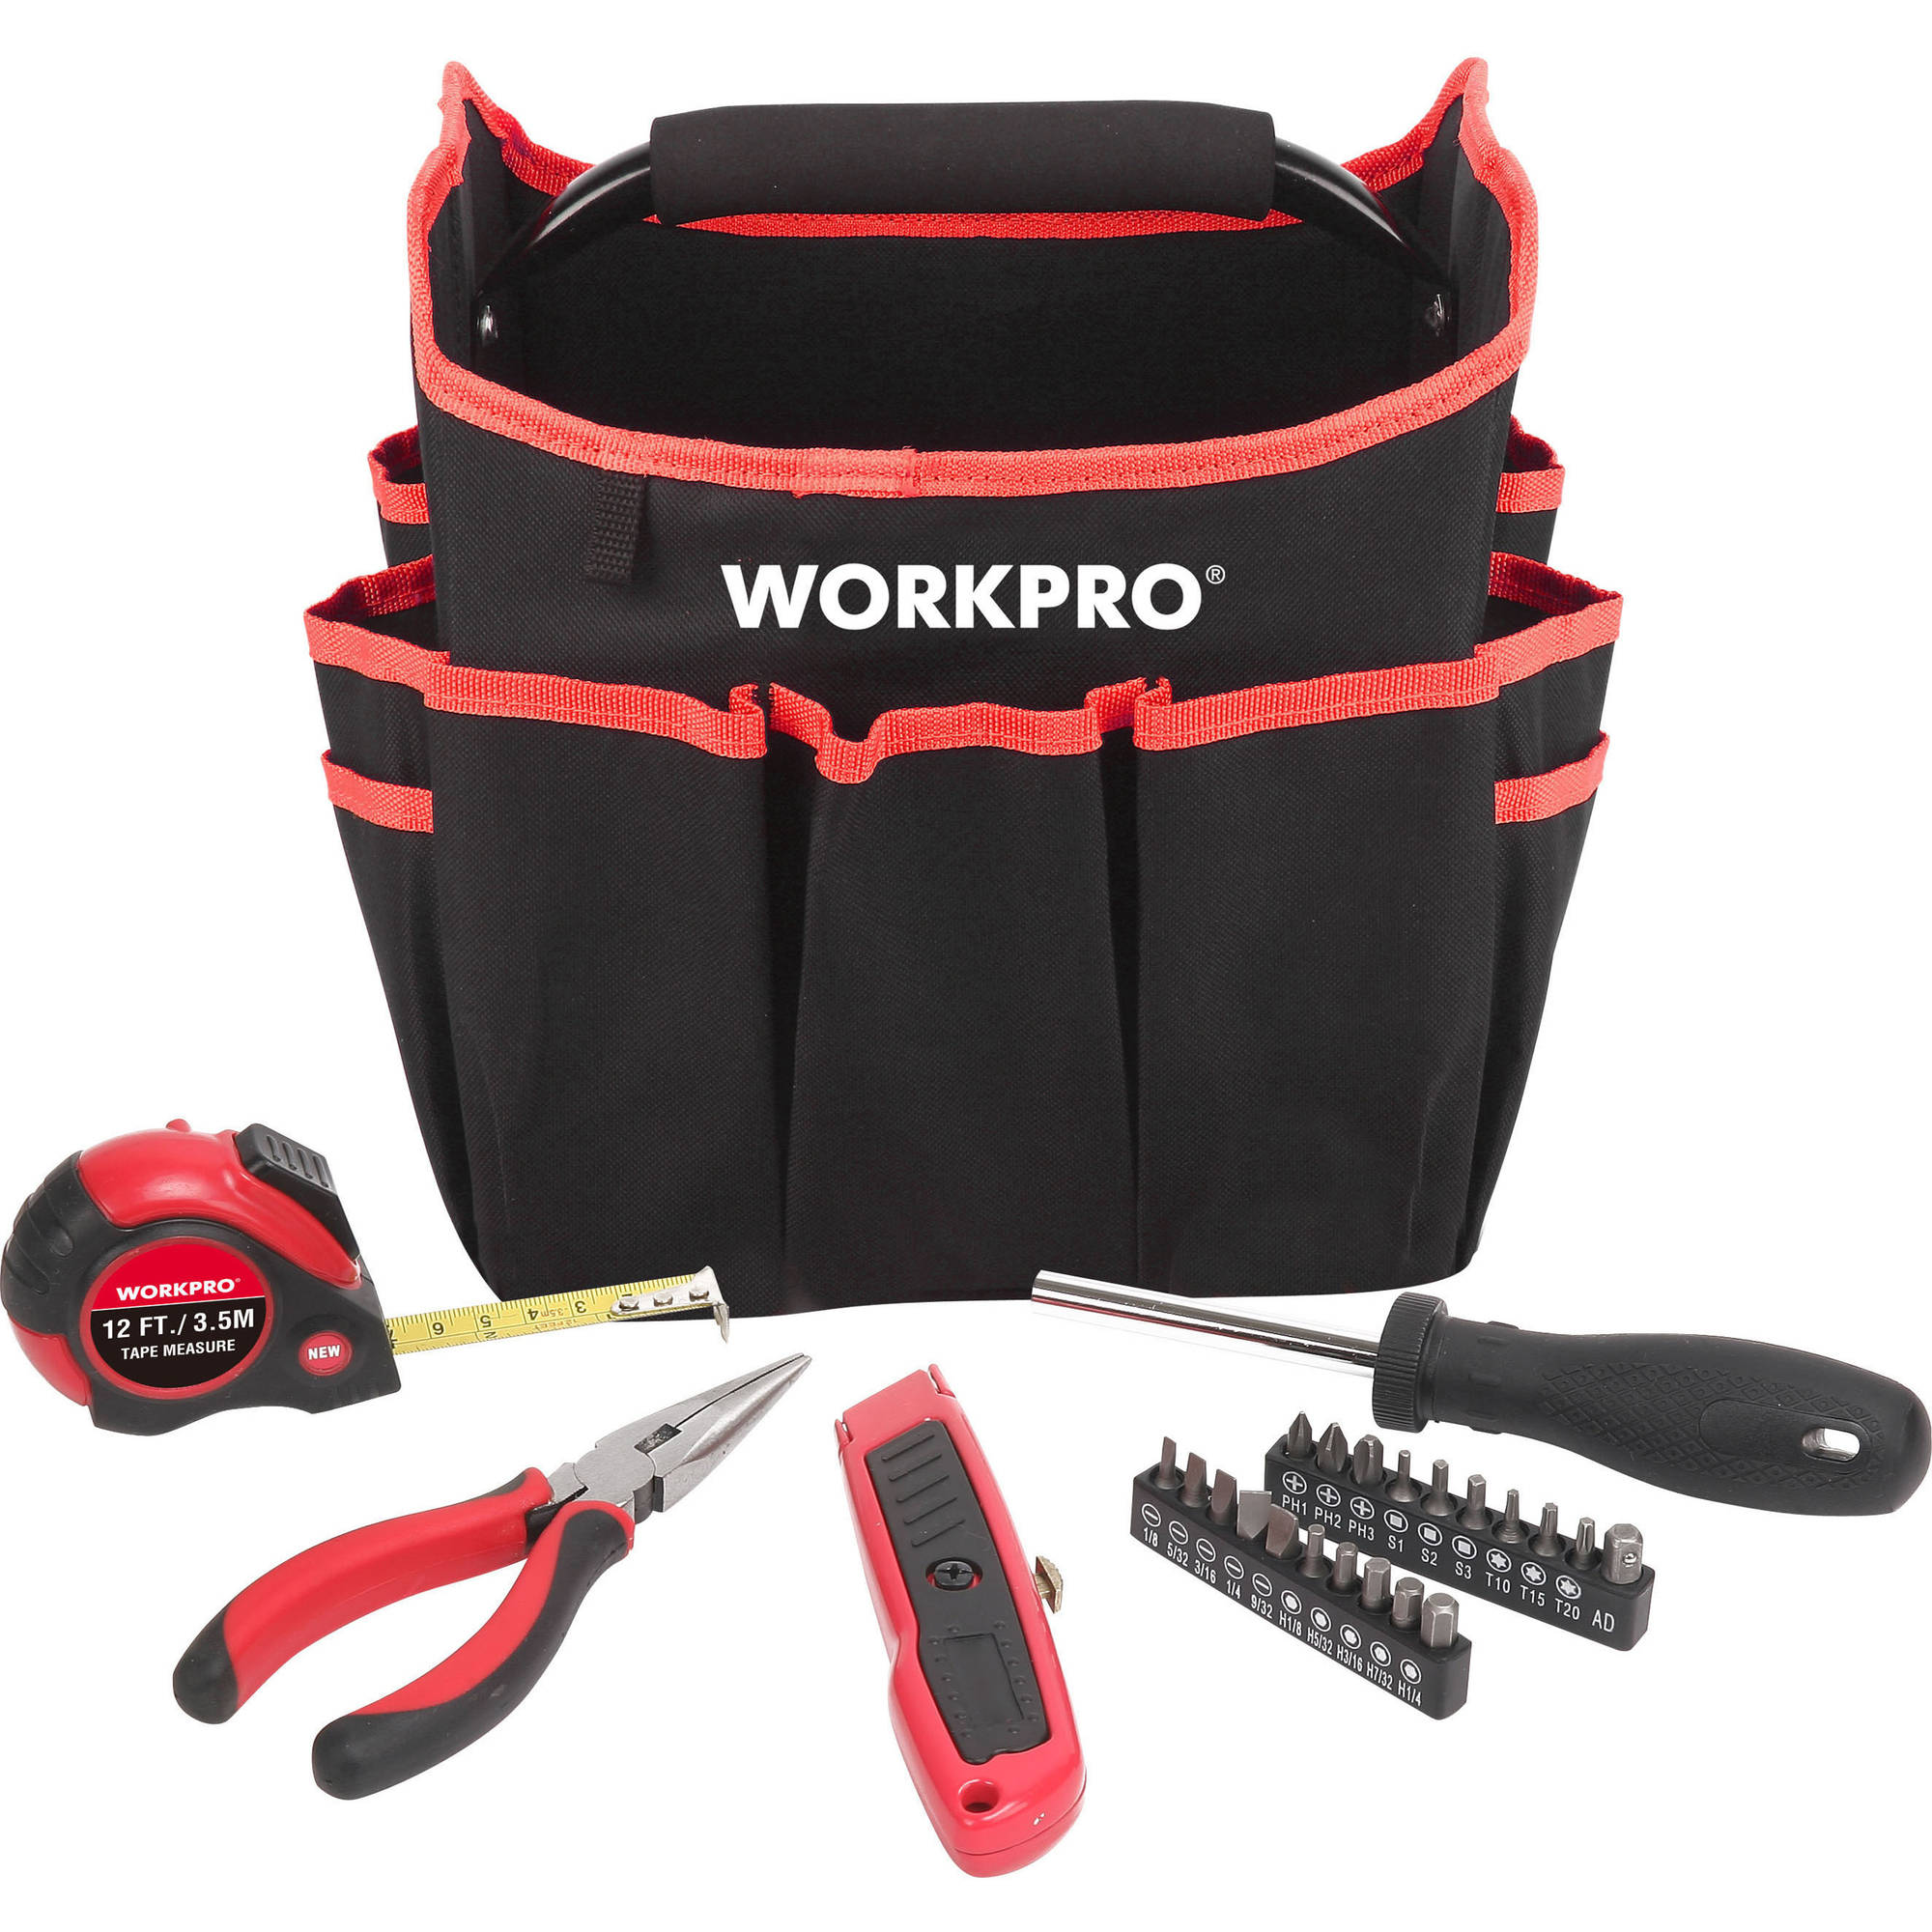 Work Pro 25-Piece Tool Set